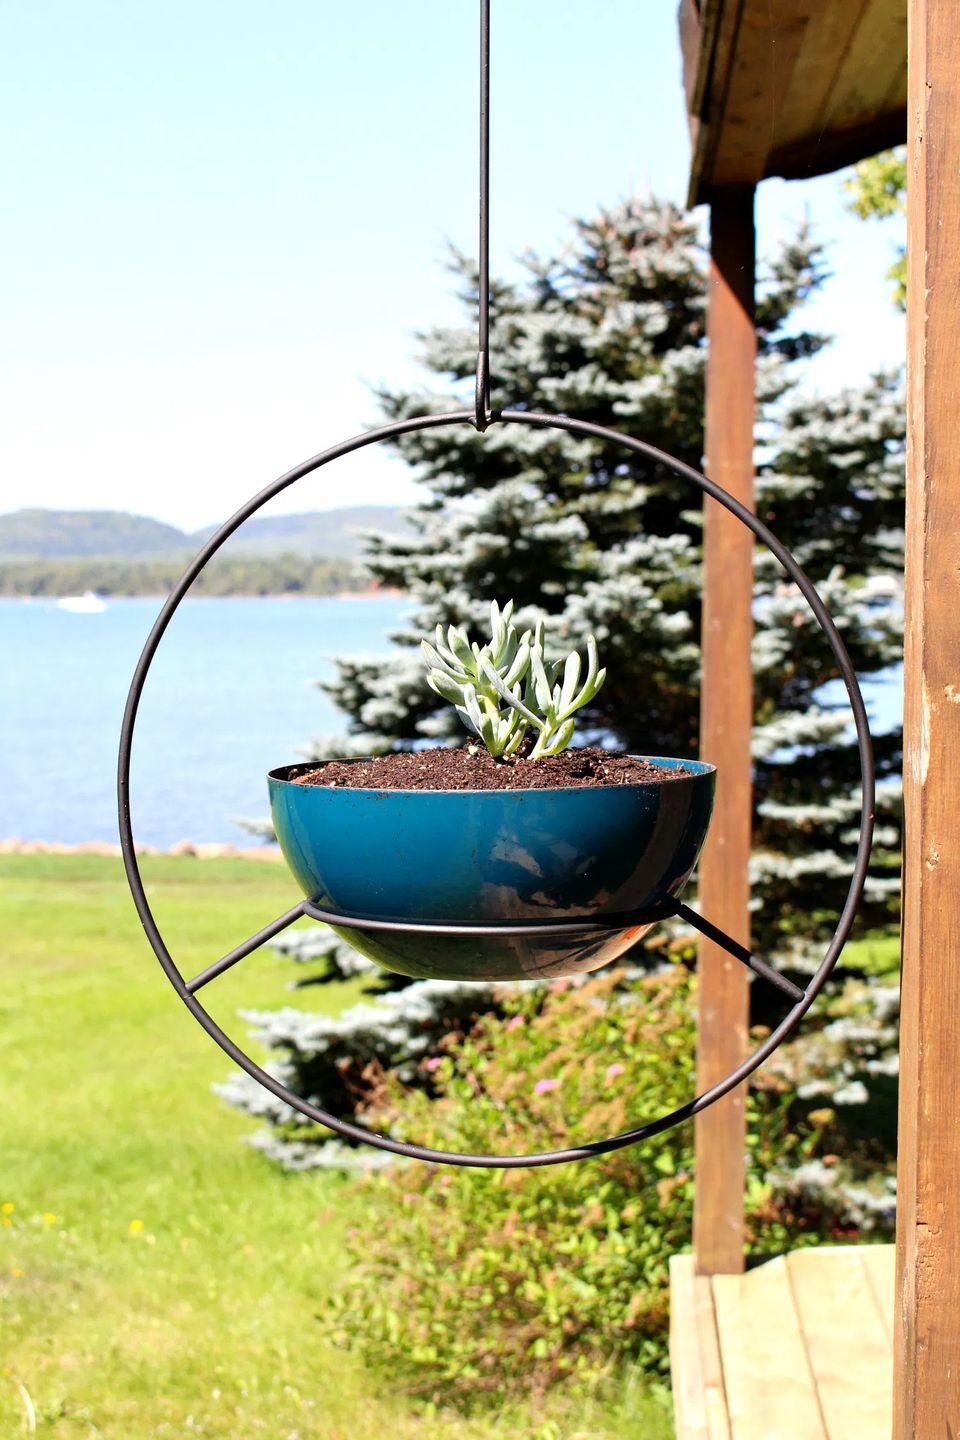 """<p>Hanging planters add great visual appeal to any setting. Opt for a more contemporary version by making this cool hoop planter. </p><p><strong>Get the tutorial at <a href=""""https://www.danslelakehouse.com/2018/10/vintage-hoop-planters-buy-diy.html"""" rel=""""nofollow noopener"""" target=""""_blank"""" data-ylk=""""slk:Dans le Lakehouse"""" class=""""link rapid-noclick-resp"""">Dans le Lakehouse</a>.</strong></p><p><a class=""""link rapid-noclick-resp"""" href=""""https://go.redirectingat.com?id=74968X1596630&url=https%3A%2F%2Fwww.walmart.com%2Fip%2FBlack-Rust-Oleum-American-Accents-2X-Ultra-Cover-Ultra-Matte-Spray-Paint-12-oz%2F488512581&sref=https%3A%2F%2Fwww.thepioneerwoman.com%2Fhome-lifestyle%2Fgardening%2Fg36556911%2Fdiy-planters%2F"""" rel=""""nofollow noopener"""" target=""""_blank"""" data-ylk=""""slk:SHOP SPRAY PAINT"""">SHOP SPRAY PAINT</a></p>"""